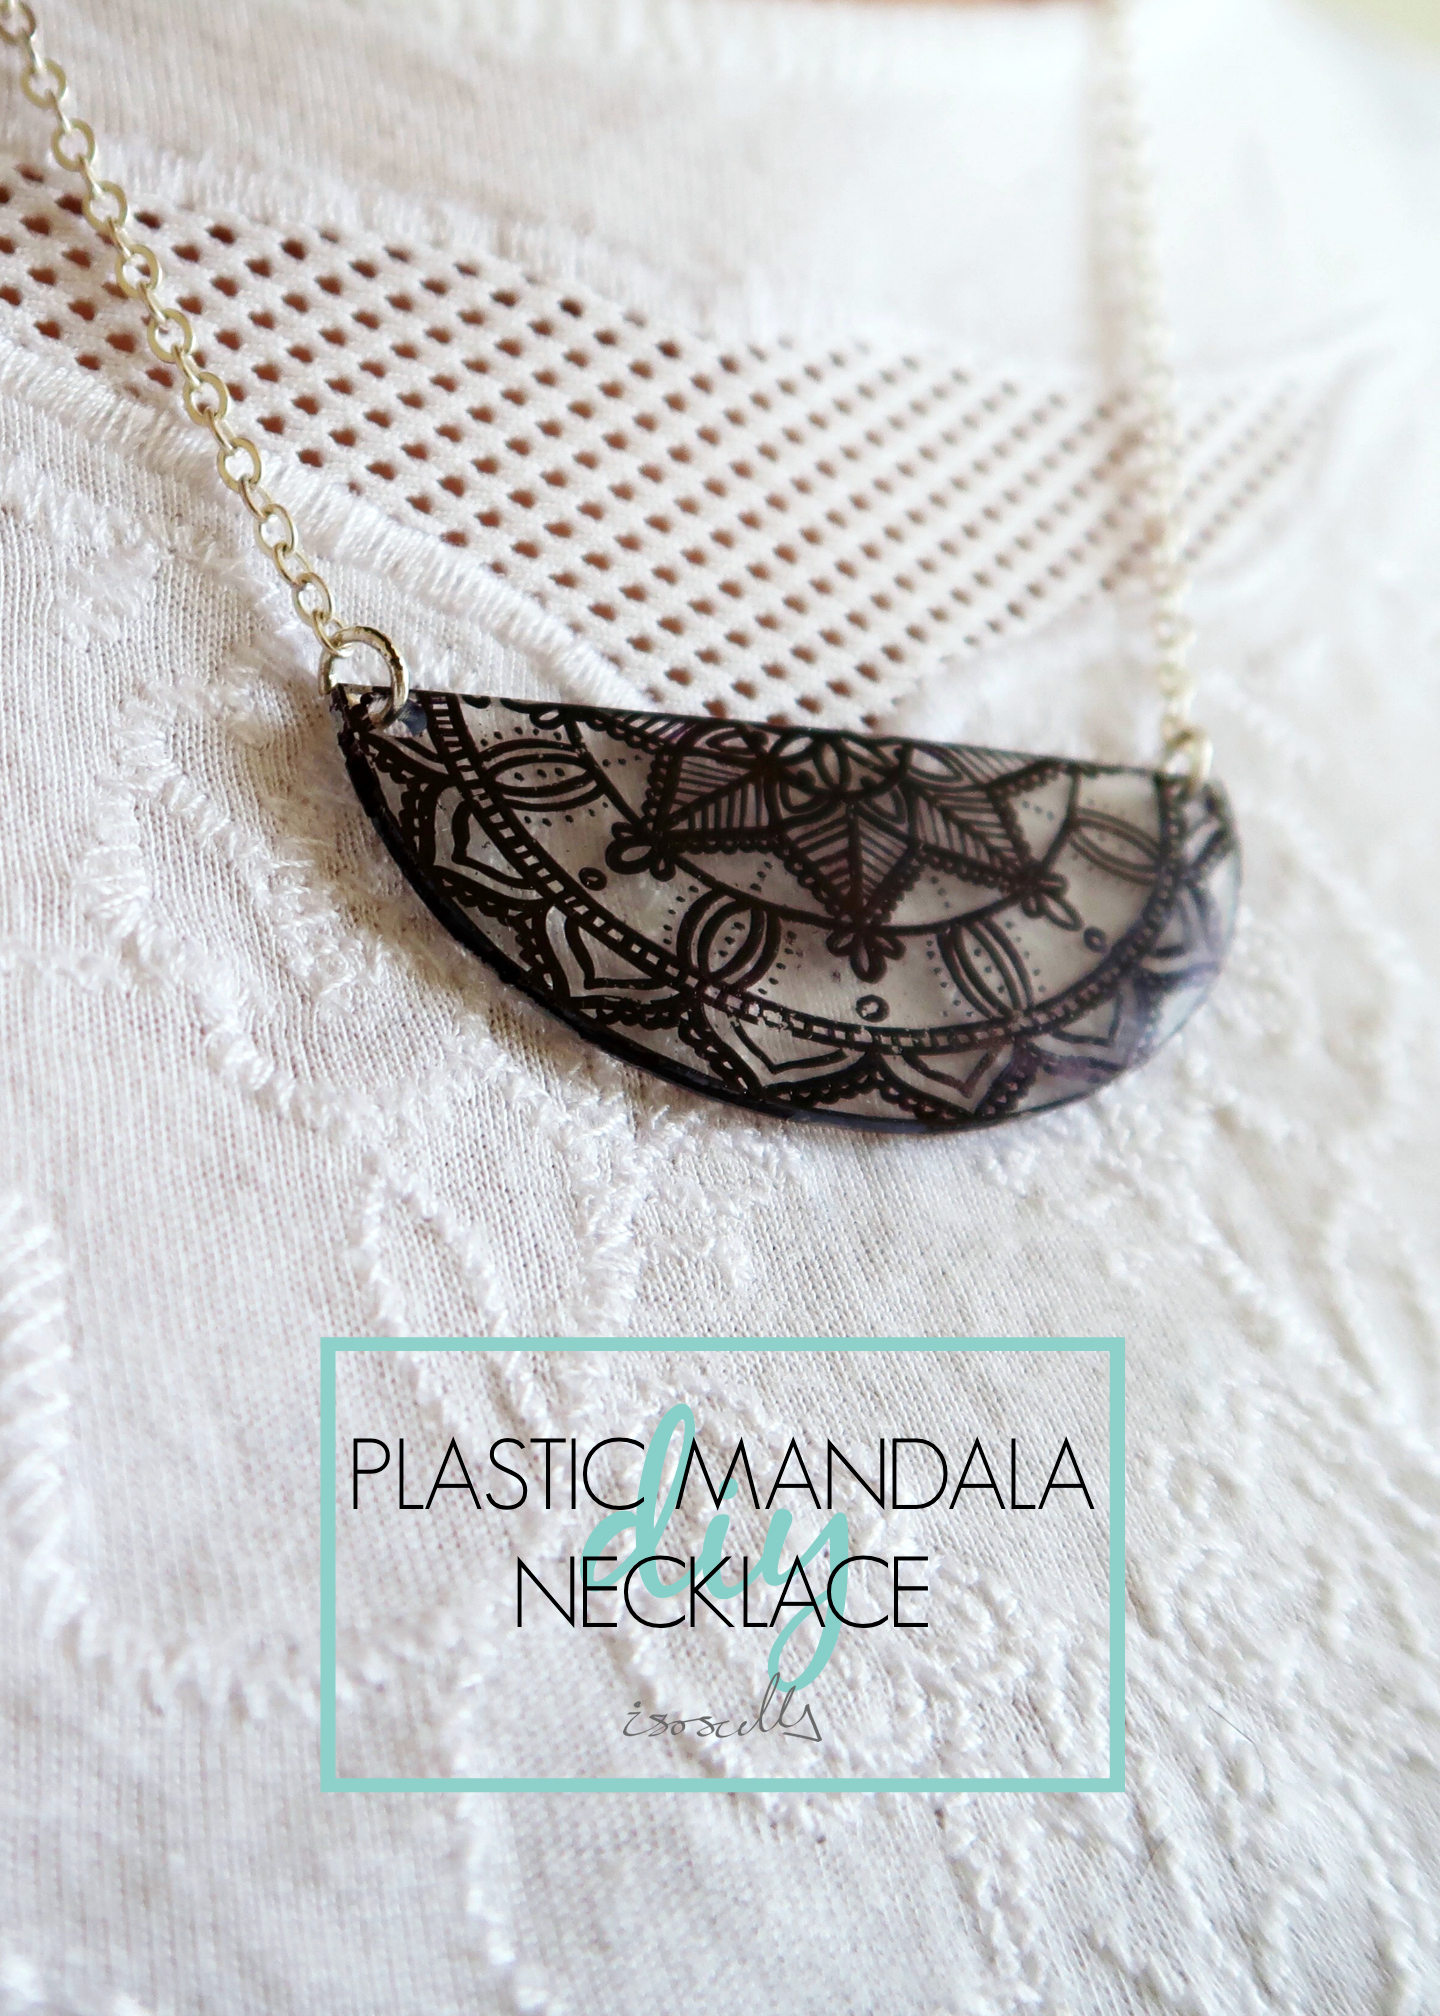 DIY Plastic Mandala Necklace by Isoscella